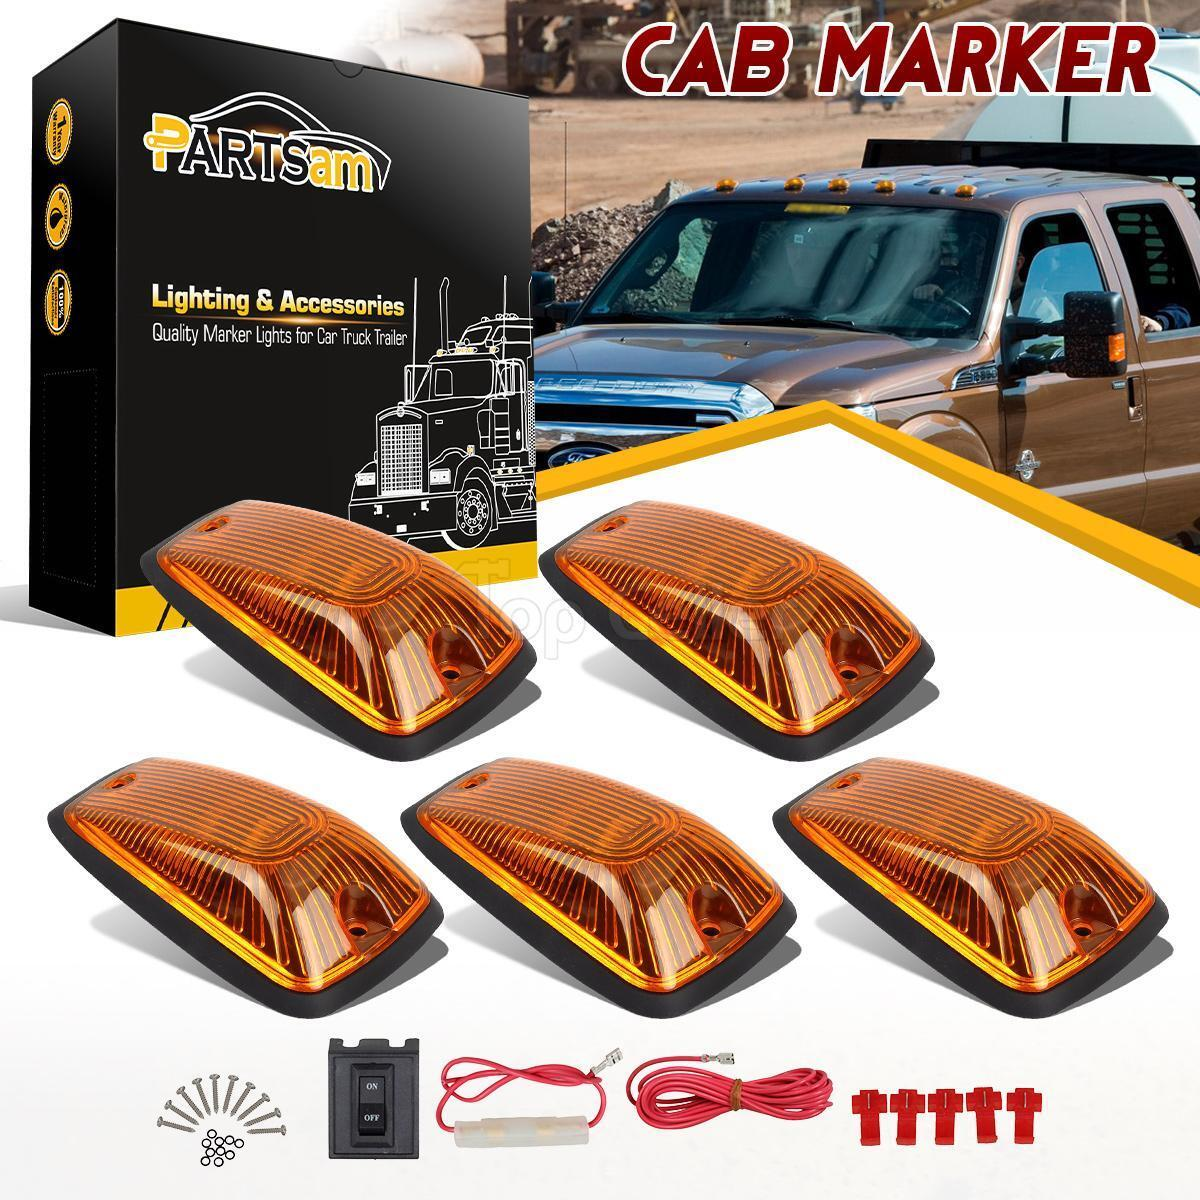 5x264159am Cab Roof Top Marker Light Amber Lens 5xbase Wiring Pack Description Three Switches With Exposed Wiringjpg 1 Of 10 See More